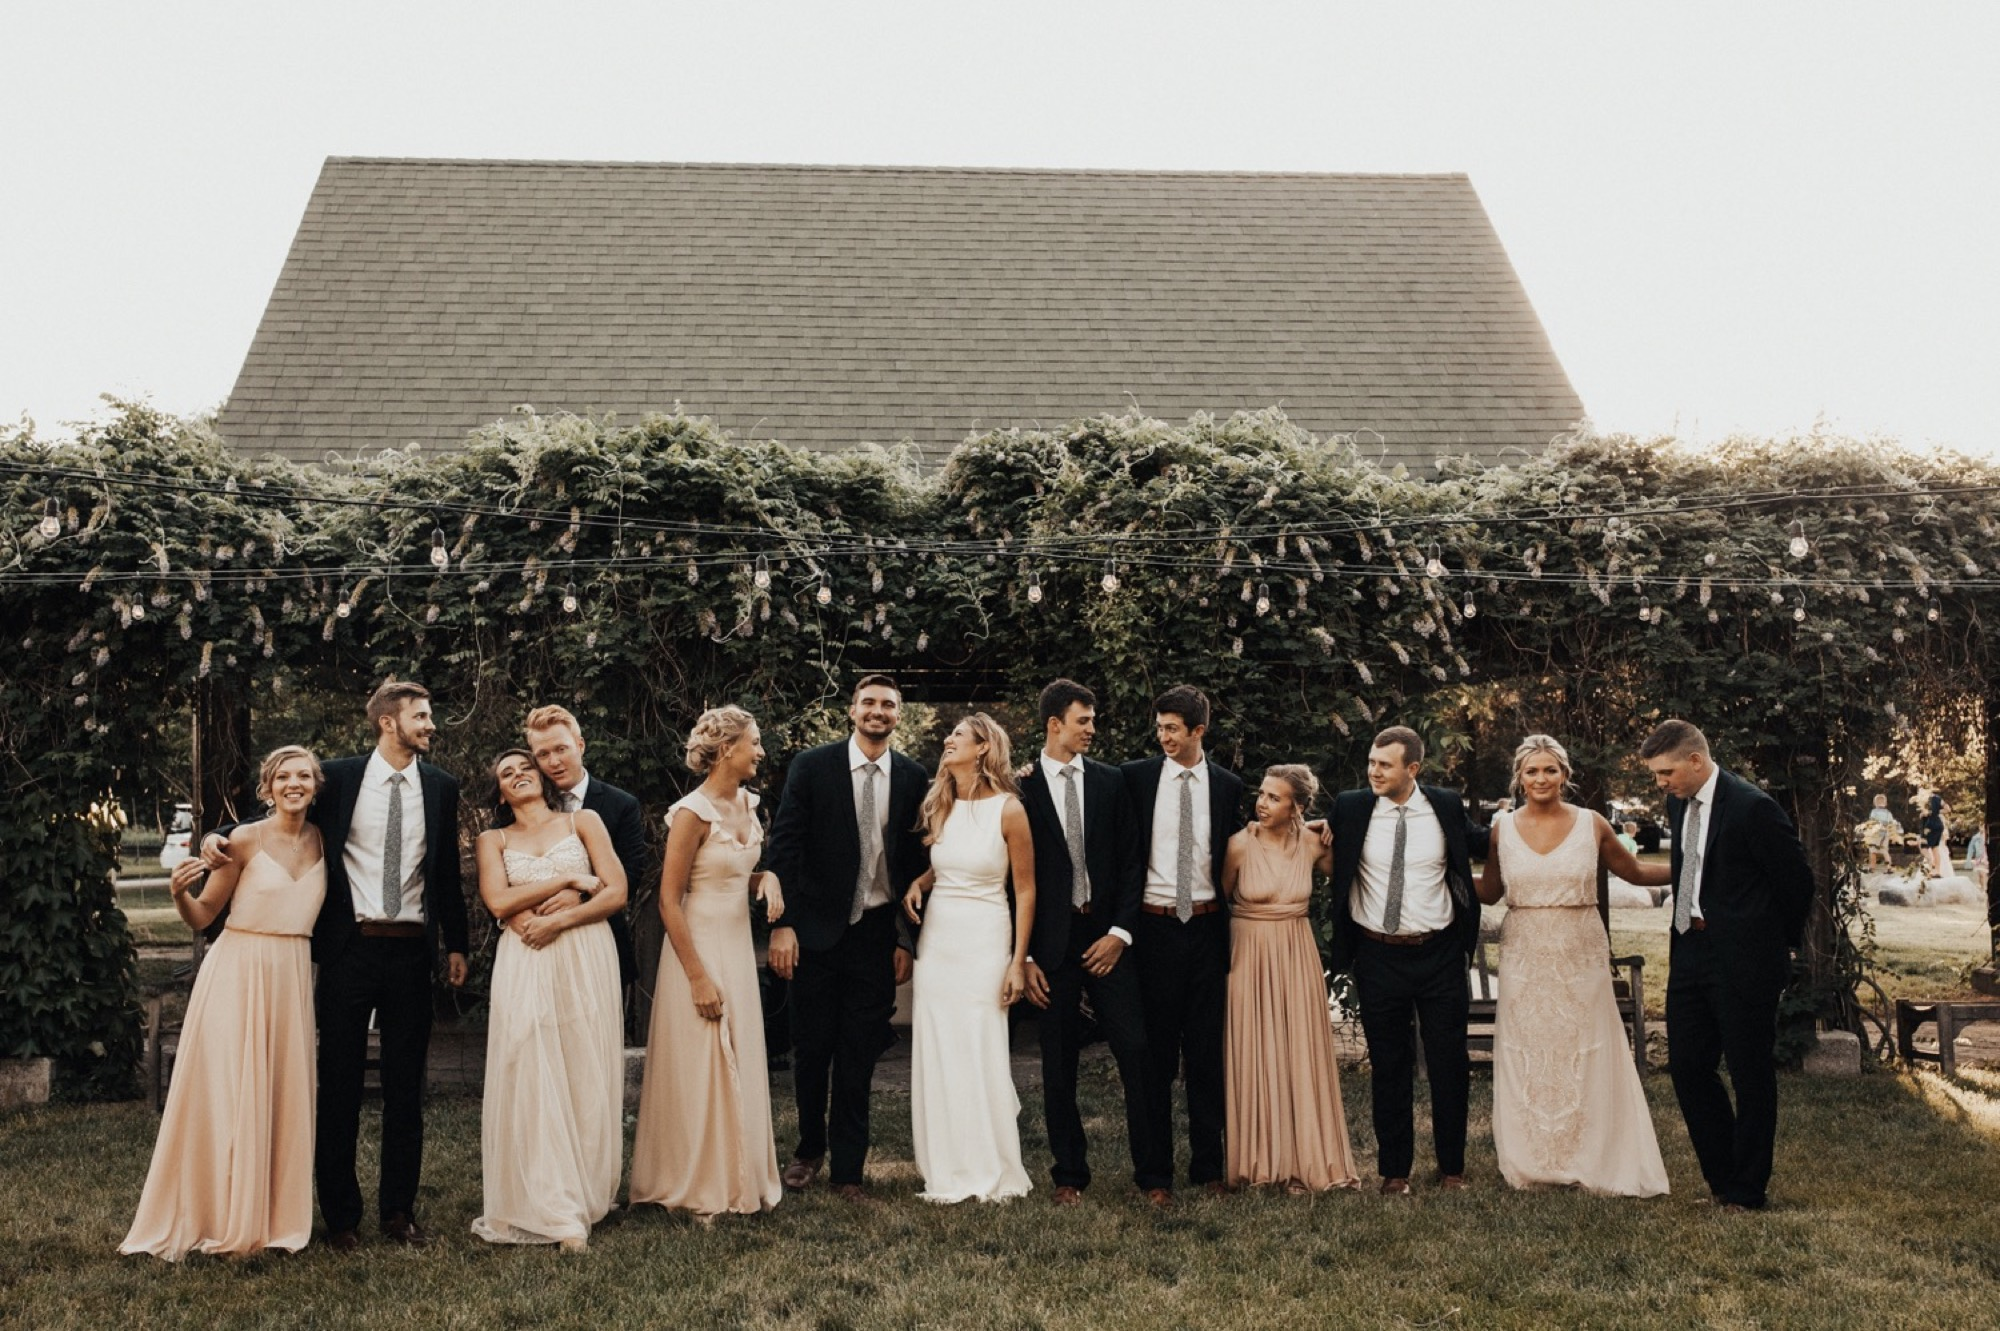 stonehaven barn wedding in Des Moines by anna jones